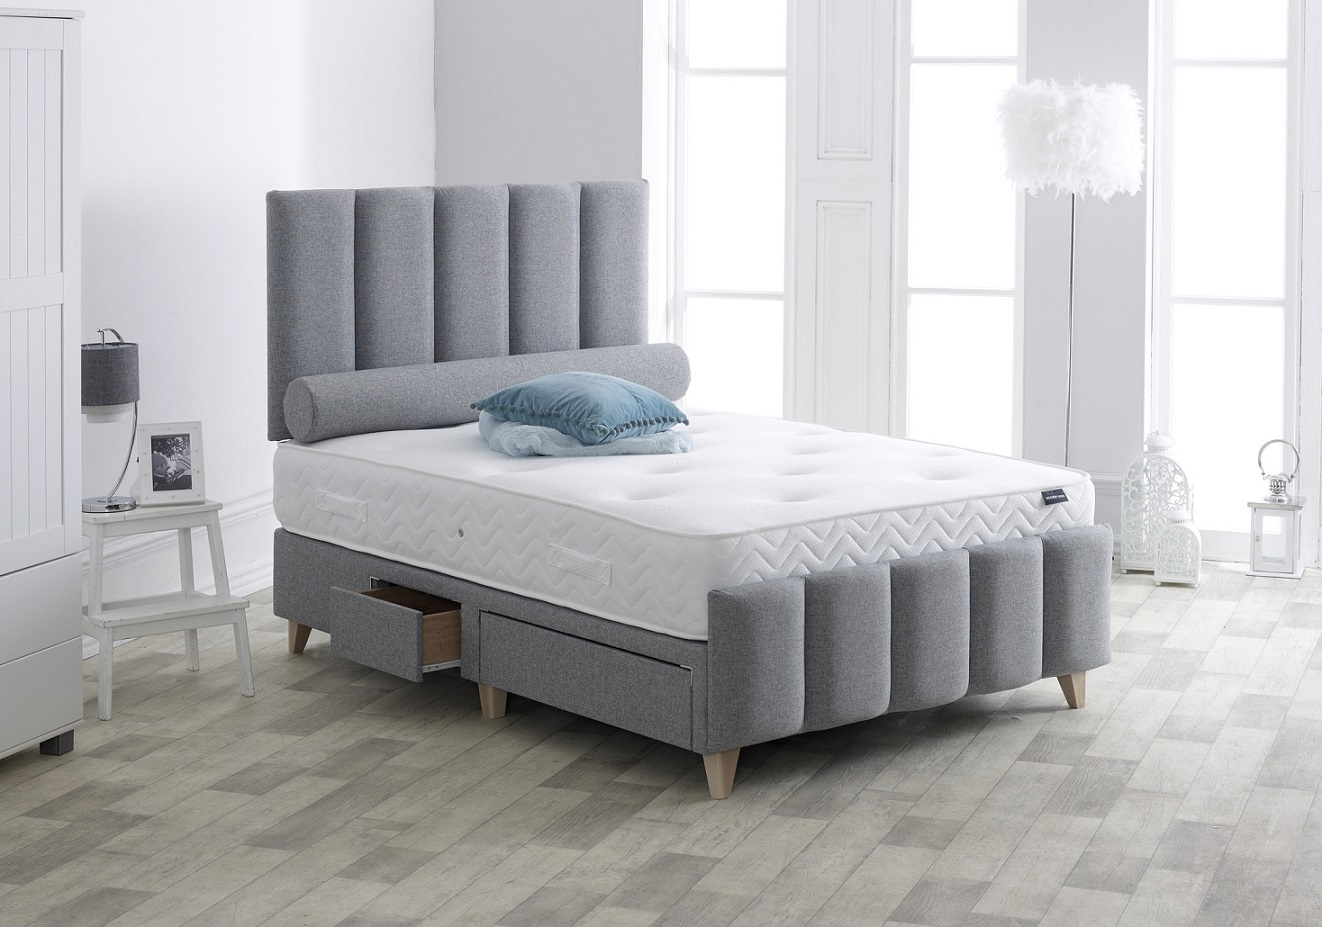 Vogue Cambridge Upholstered Fabric Storage Bed Frame